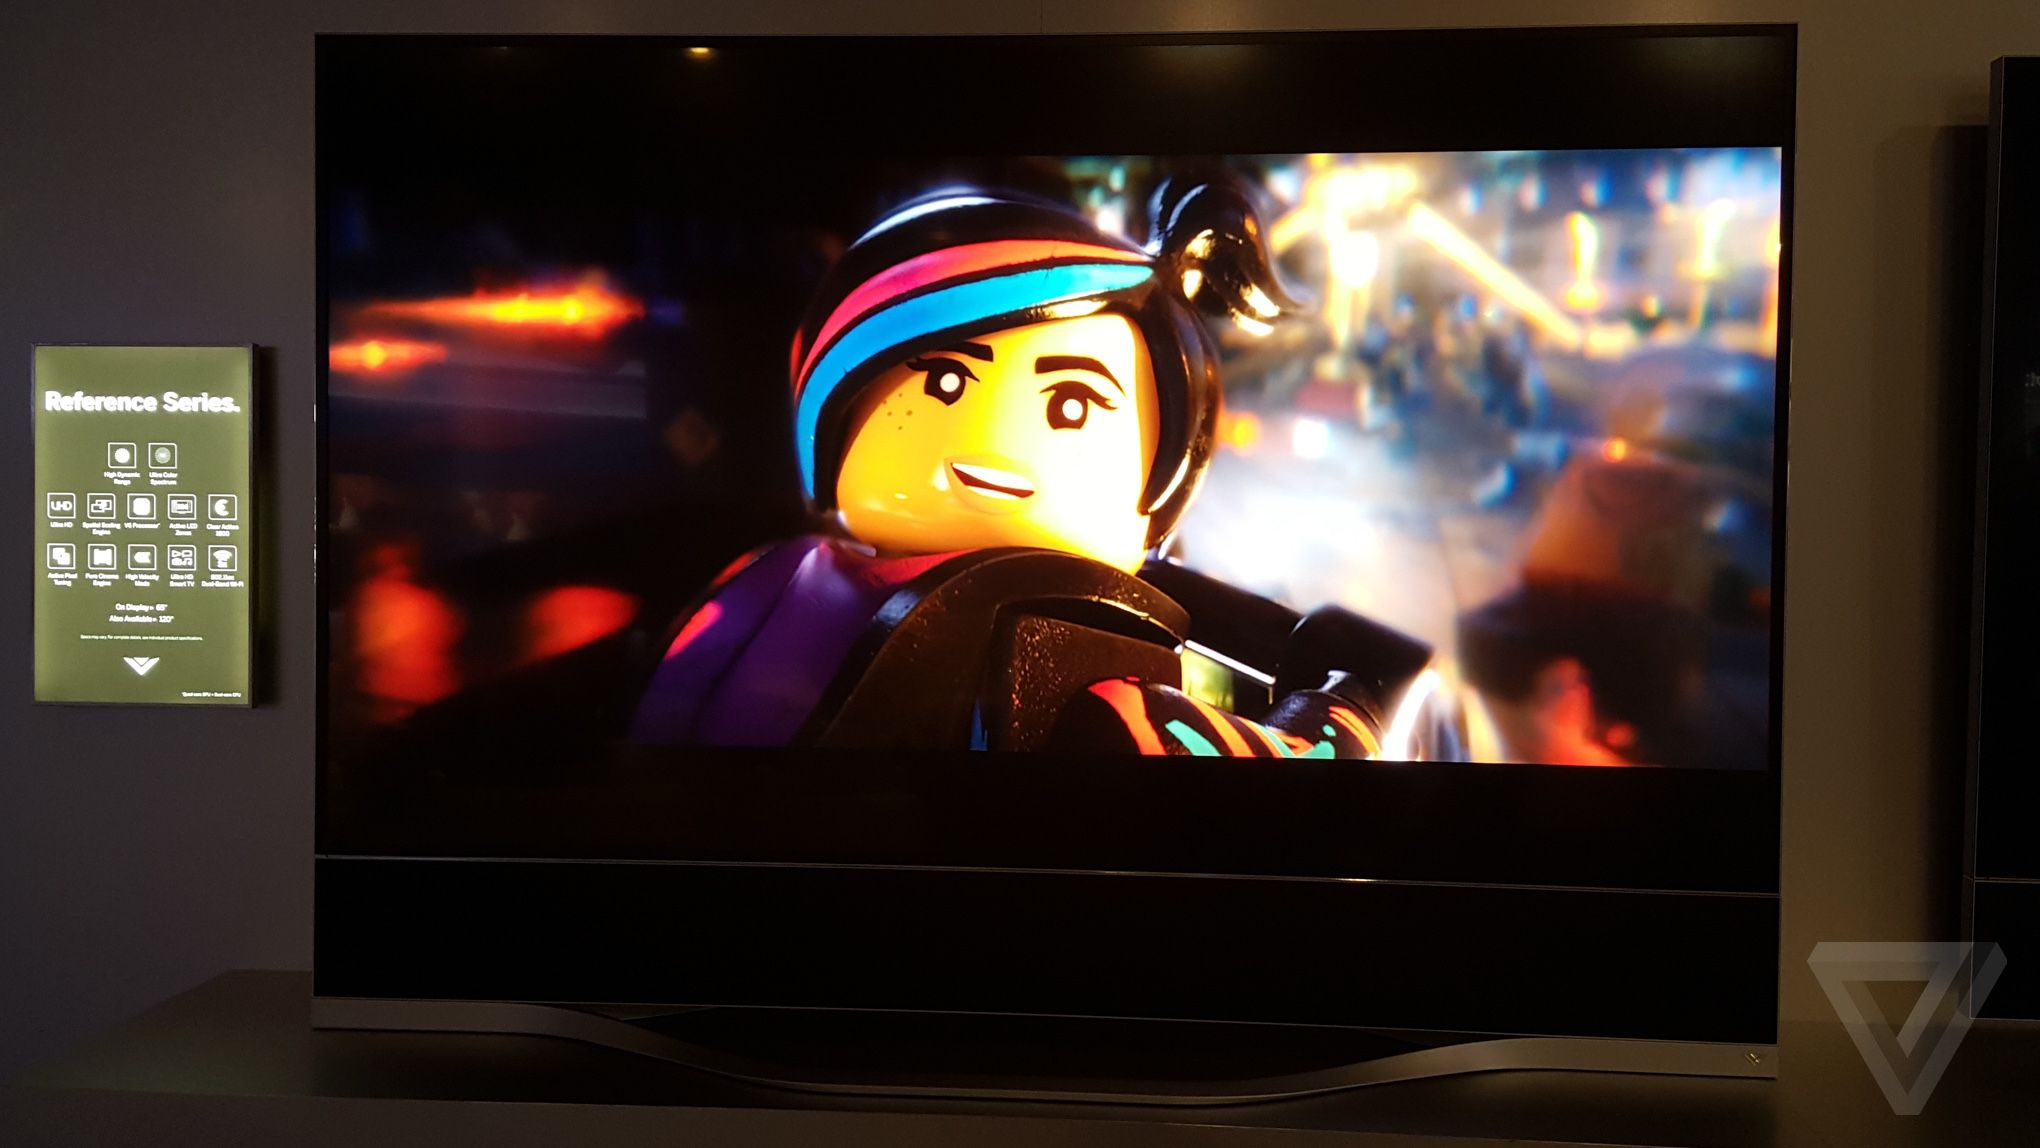 LEGO movie reference series